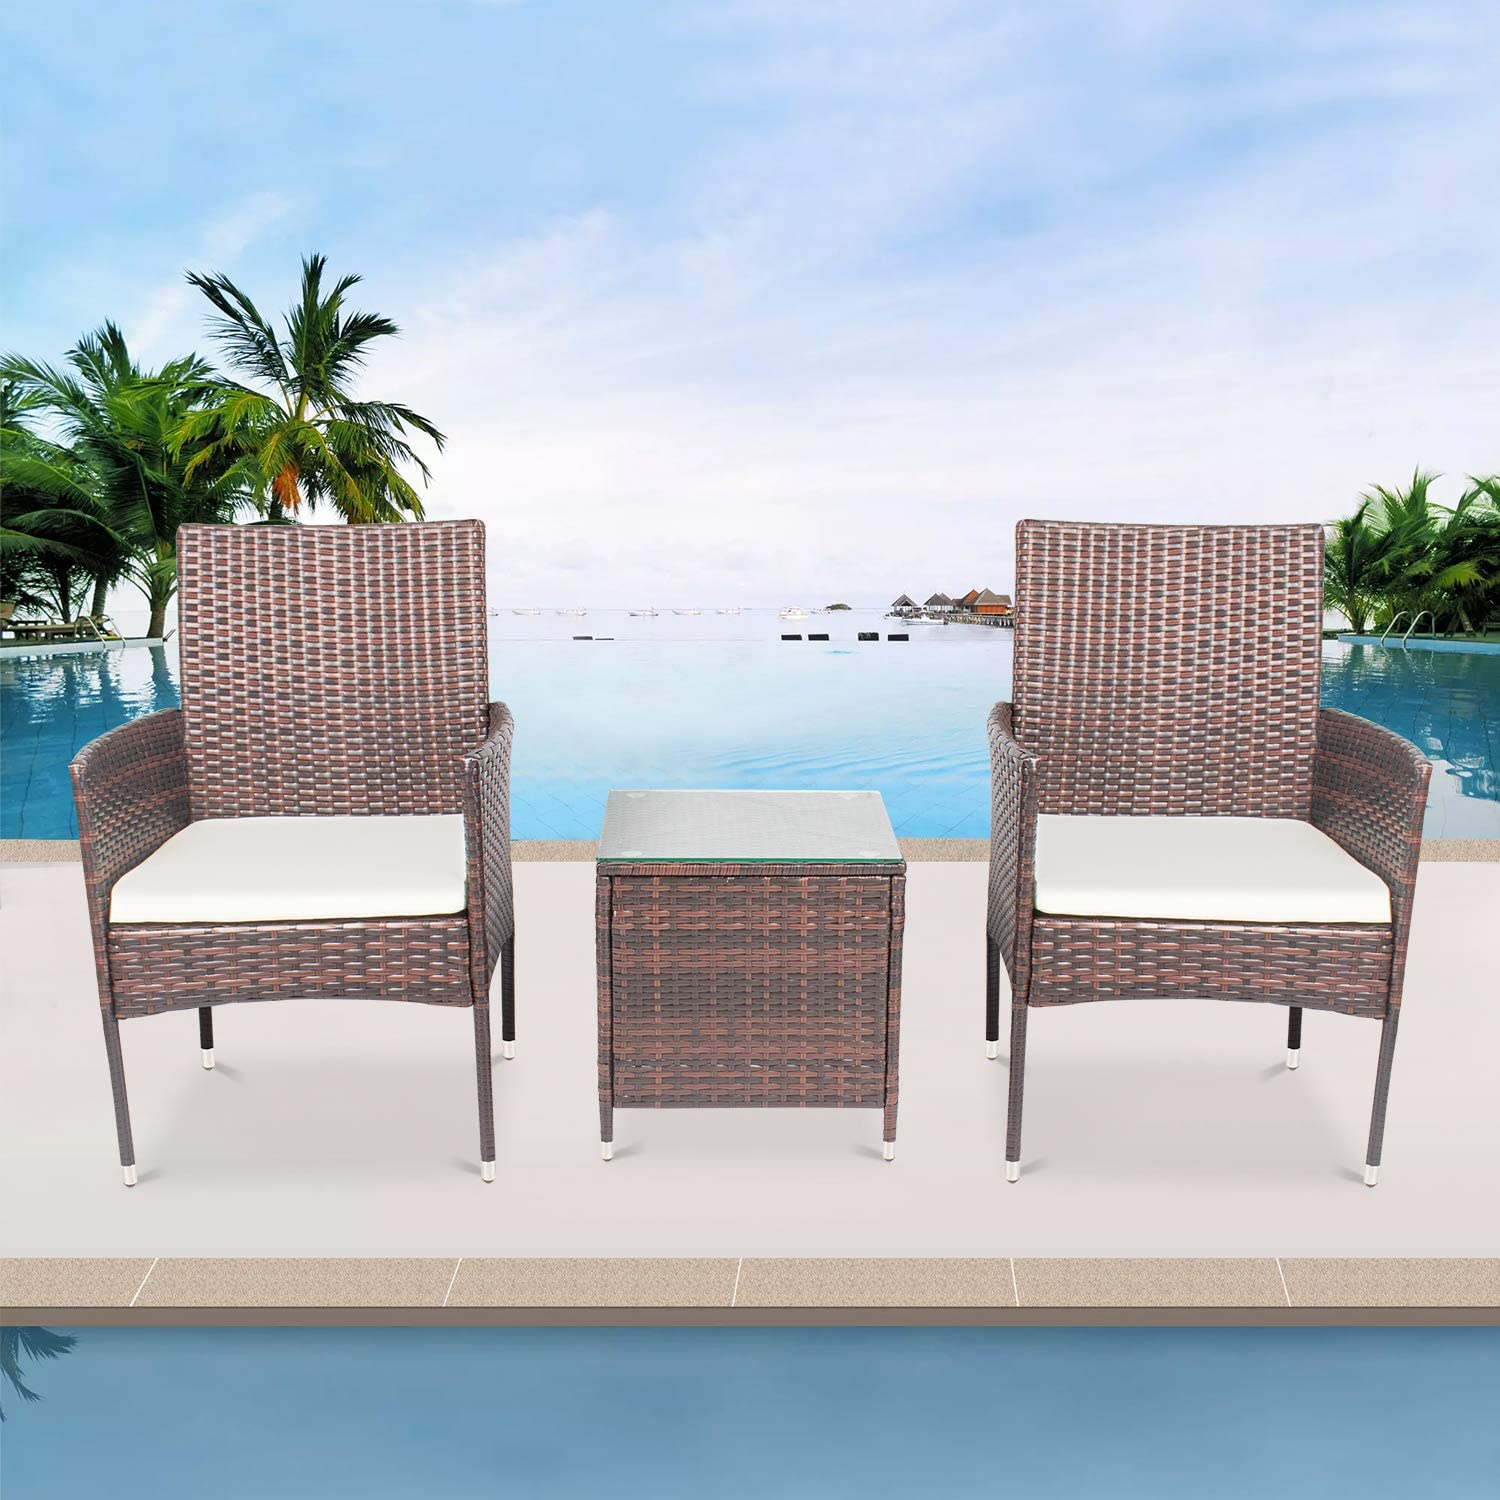 AWQM Porch 3 Piece Rattan Chairs with Cushions, Small Glass Coffee Table Patio Conversation Sets Wicker Furniture for Outdoor Lawn Garden Backyard Poolside Balcony, 3 Pcs